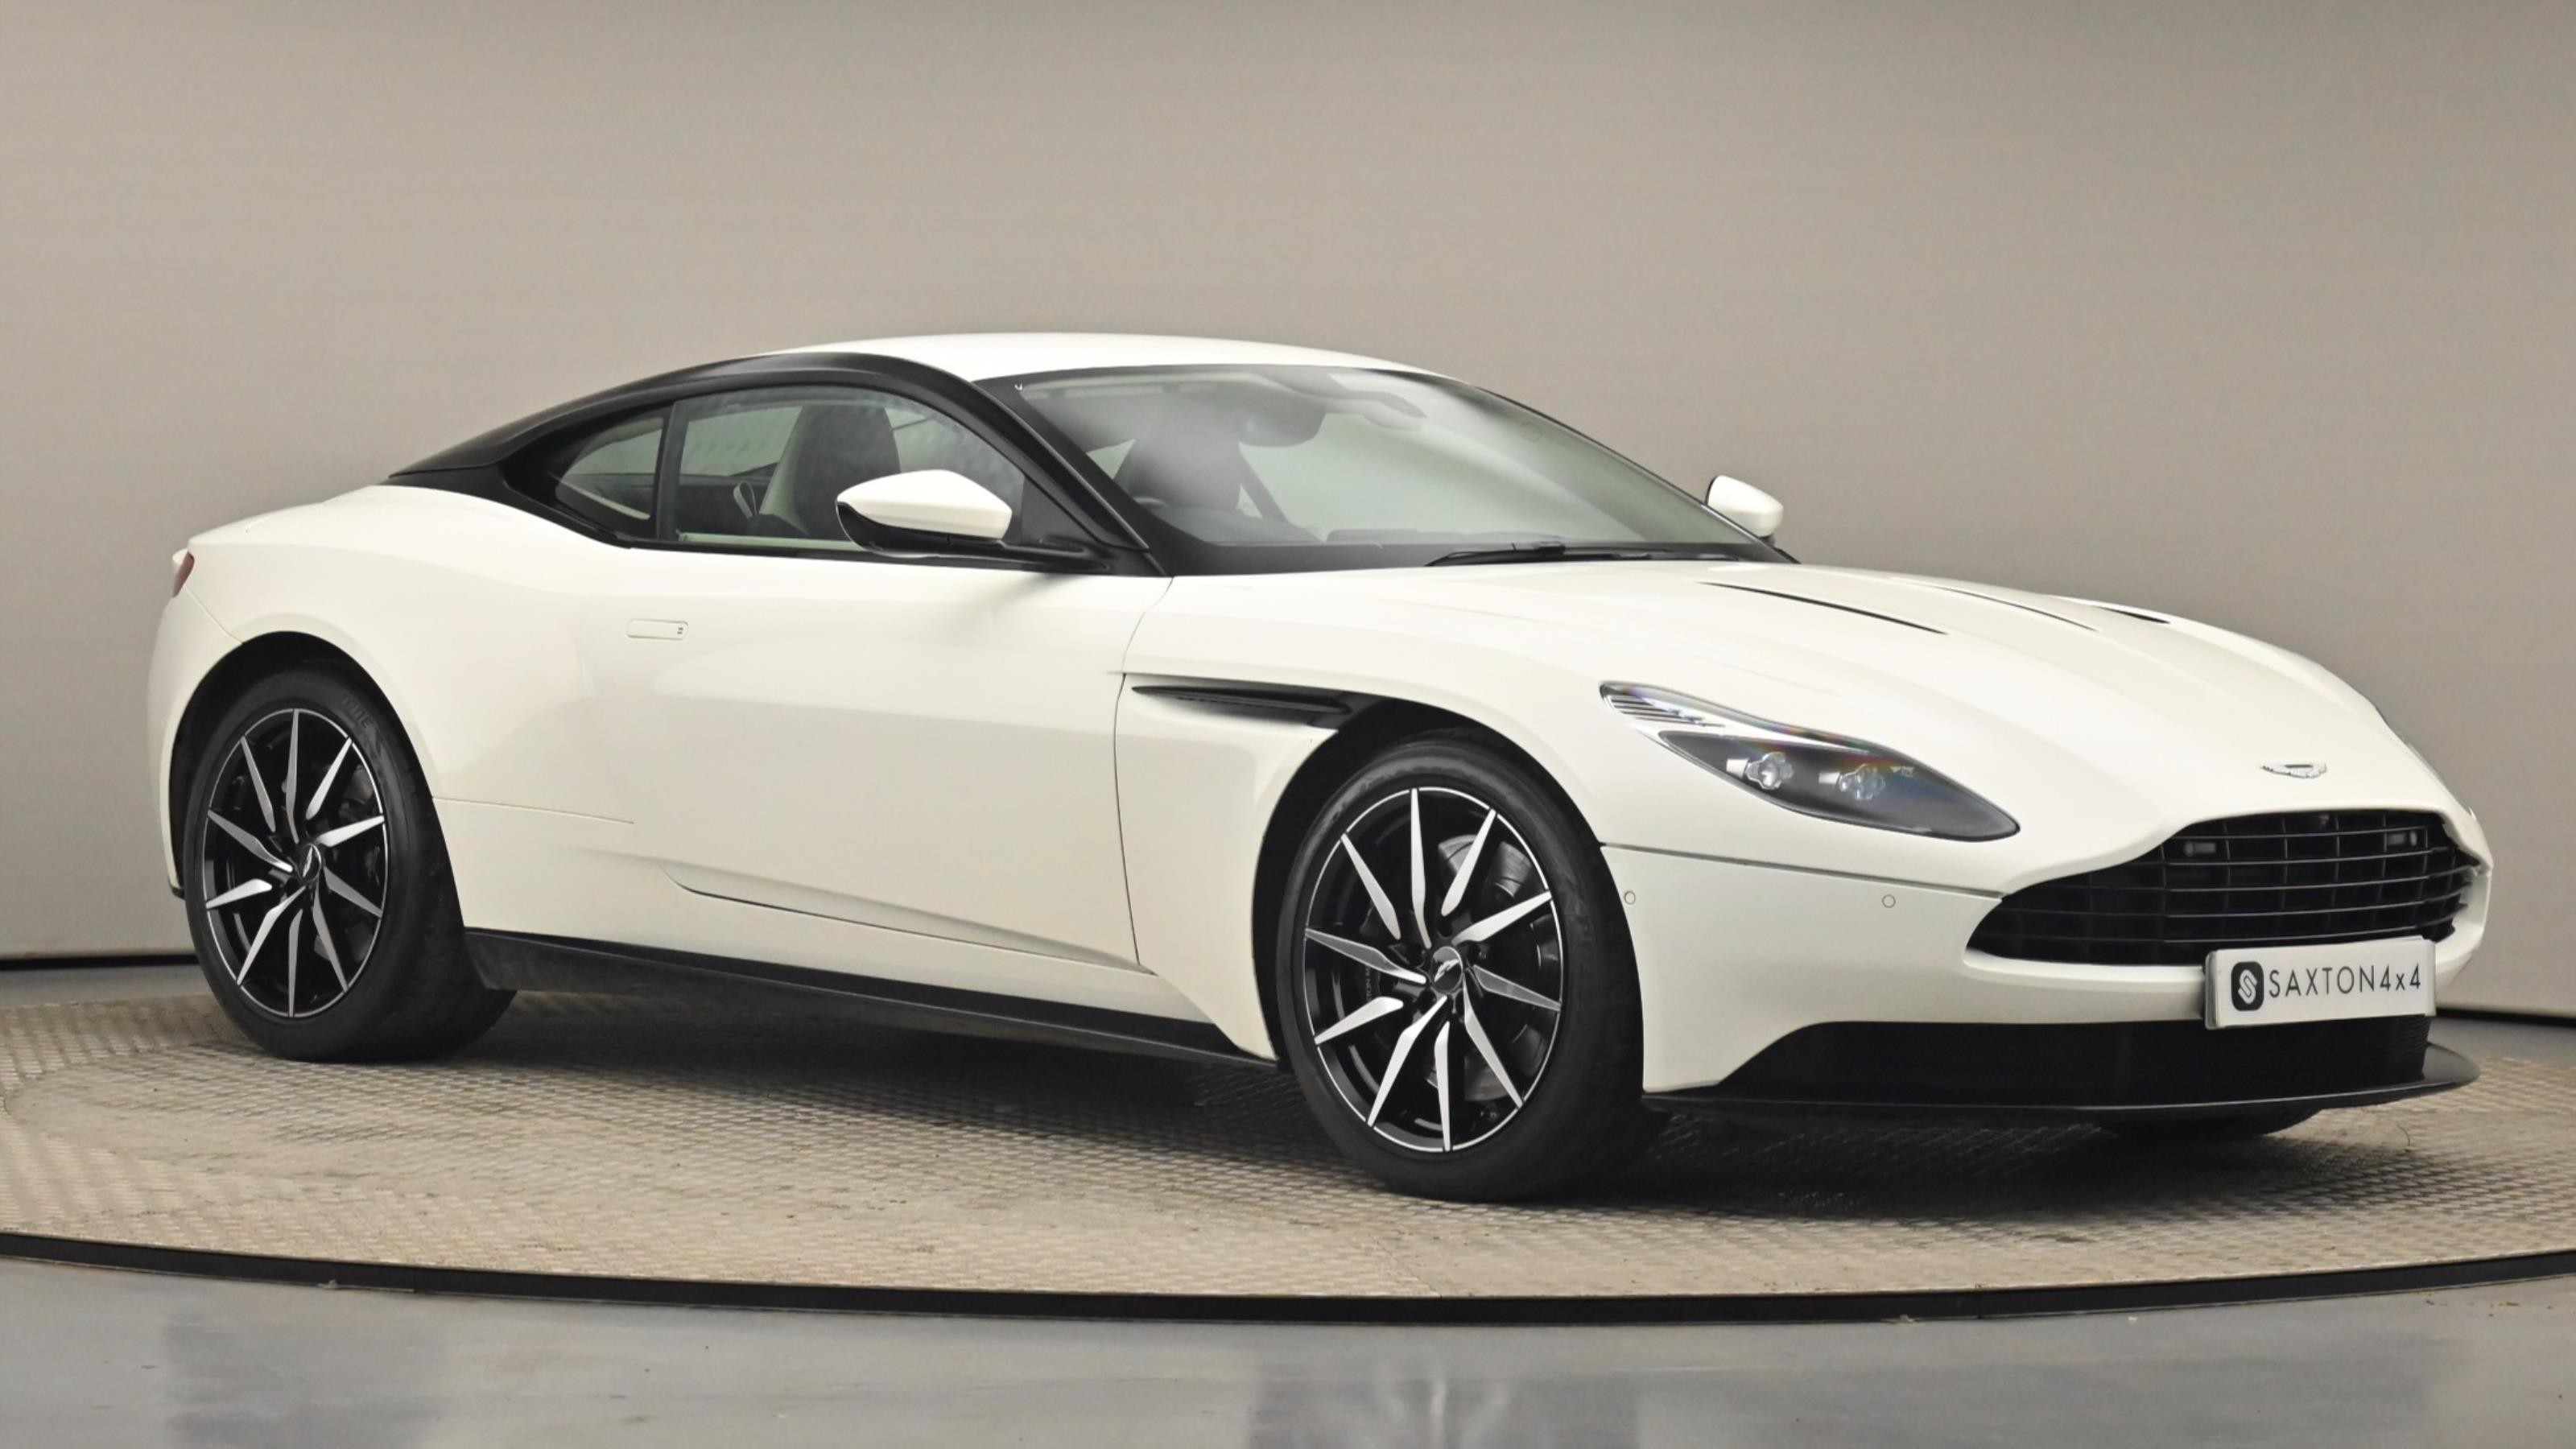 Used 2017 Aston Martin DB11 V12 Launch Edition 2dr Touchtronic Auto WHITE at Saxton4x4